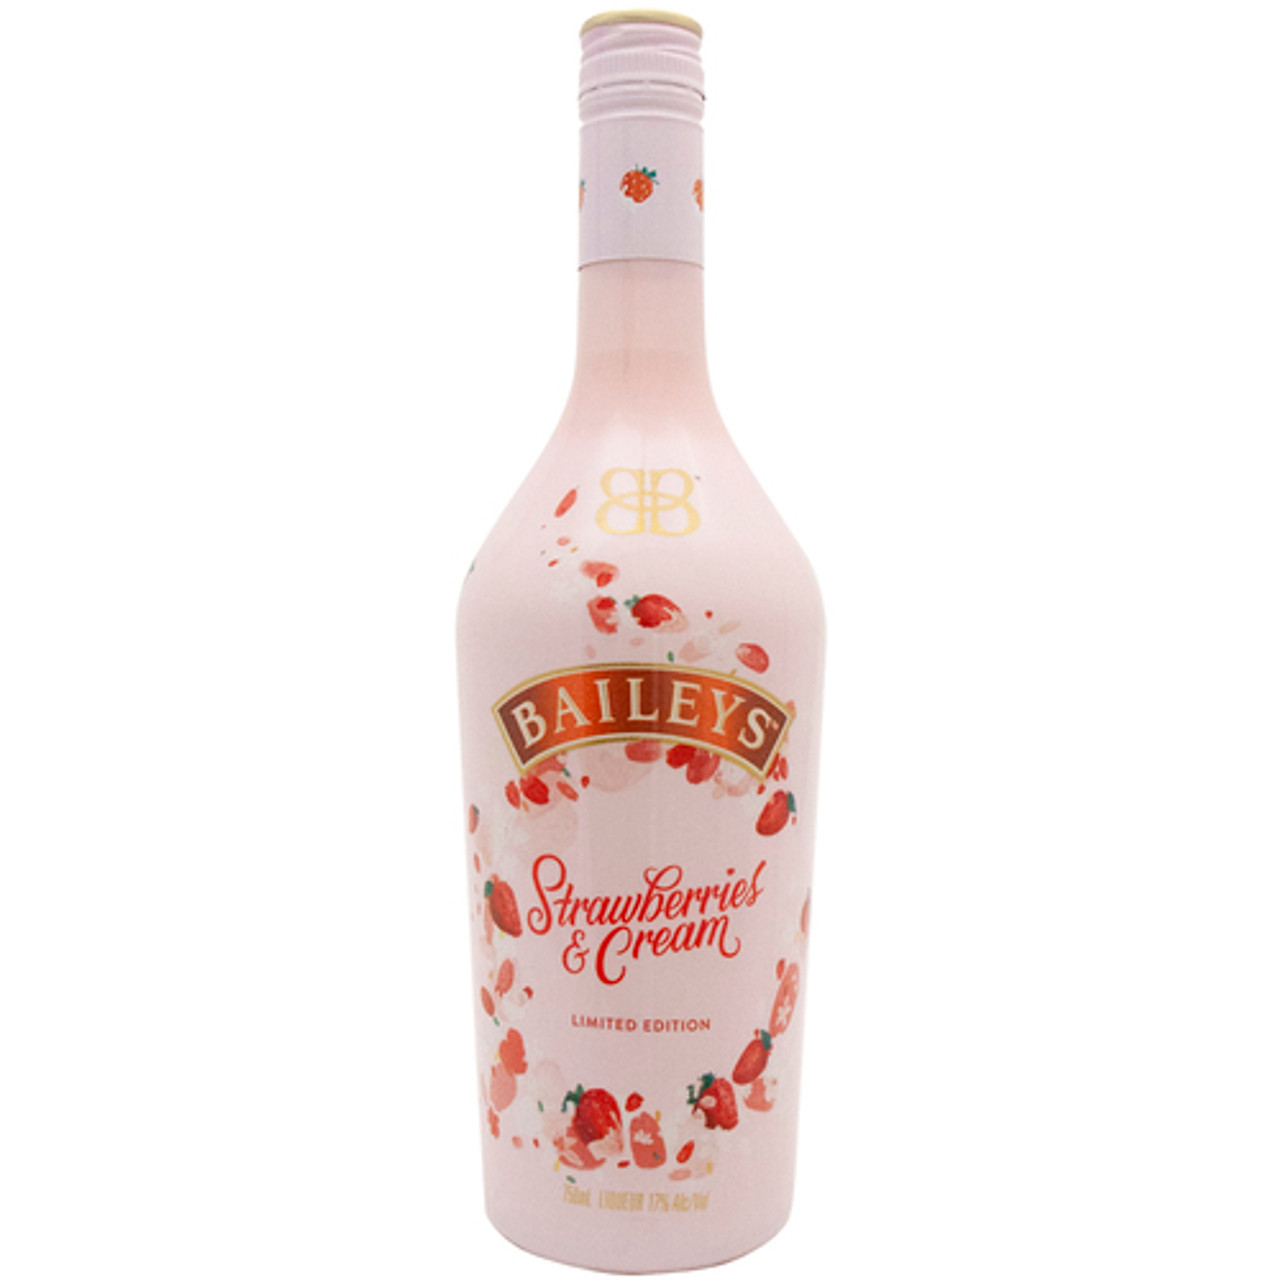 Treat yourself to the luxurious taste of berries and cream with the limited edition Baileys Strawberries & Cream Liqueur. By blending fresh, juicy strawberries with pure Irish dairy cream and the unique Baileys spirit, Strawberries & Cream is perfect for a sweet dessert or in a mixed drink after dinner.